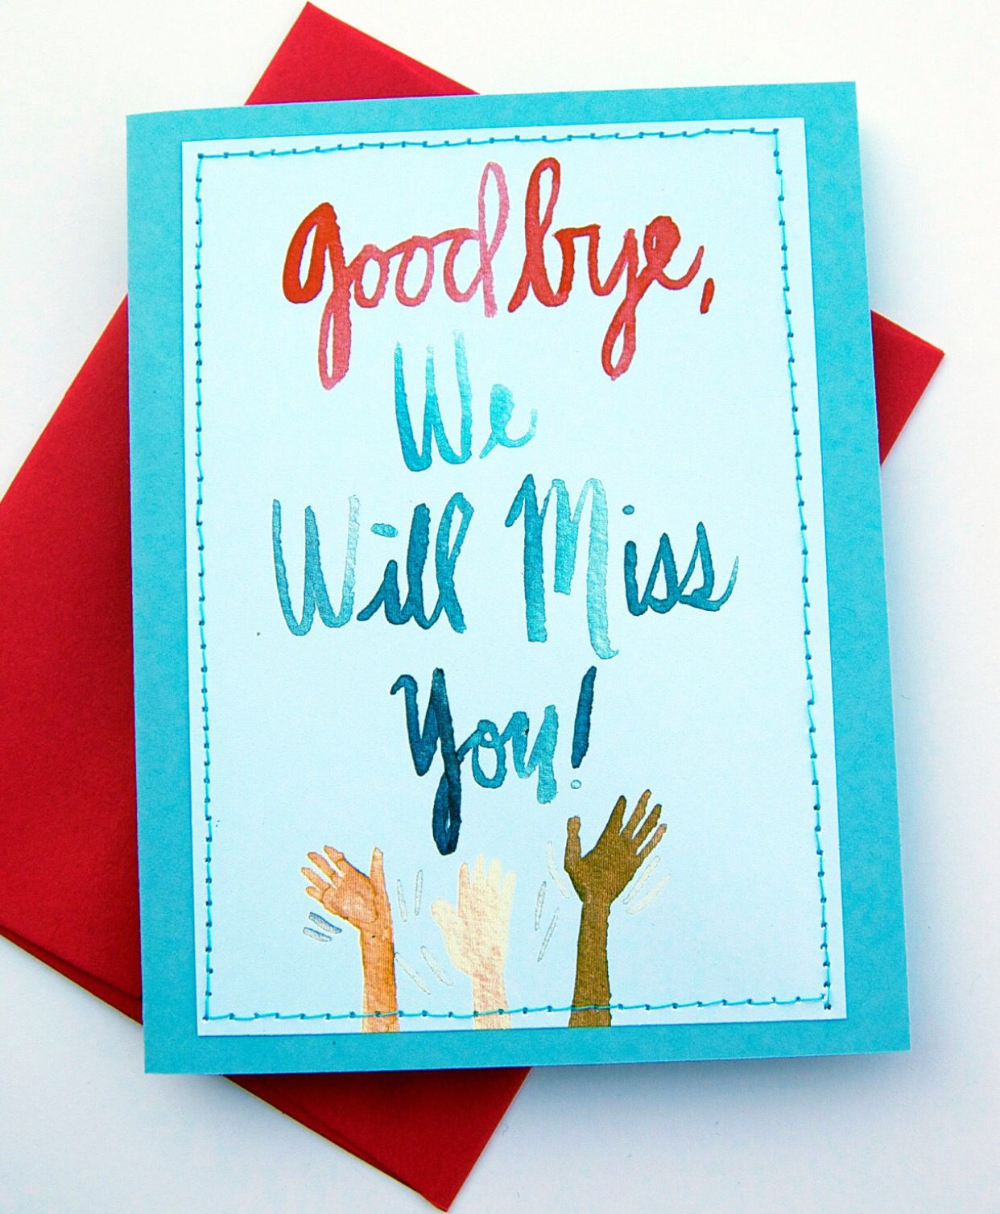 Good Bye Will Miss You Student Teacher Relationship Throughout Sorry You Re Leaving Card Template Farewell Cards Goodbye Cards Farewell Greeting Cards